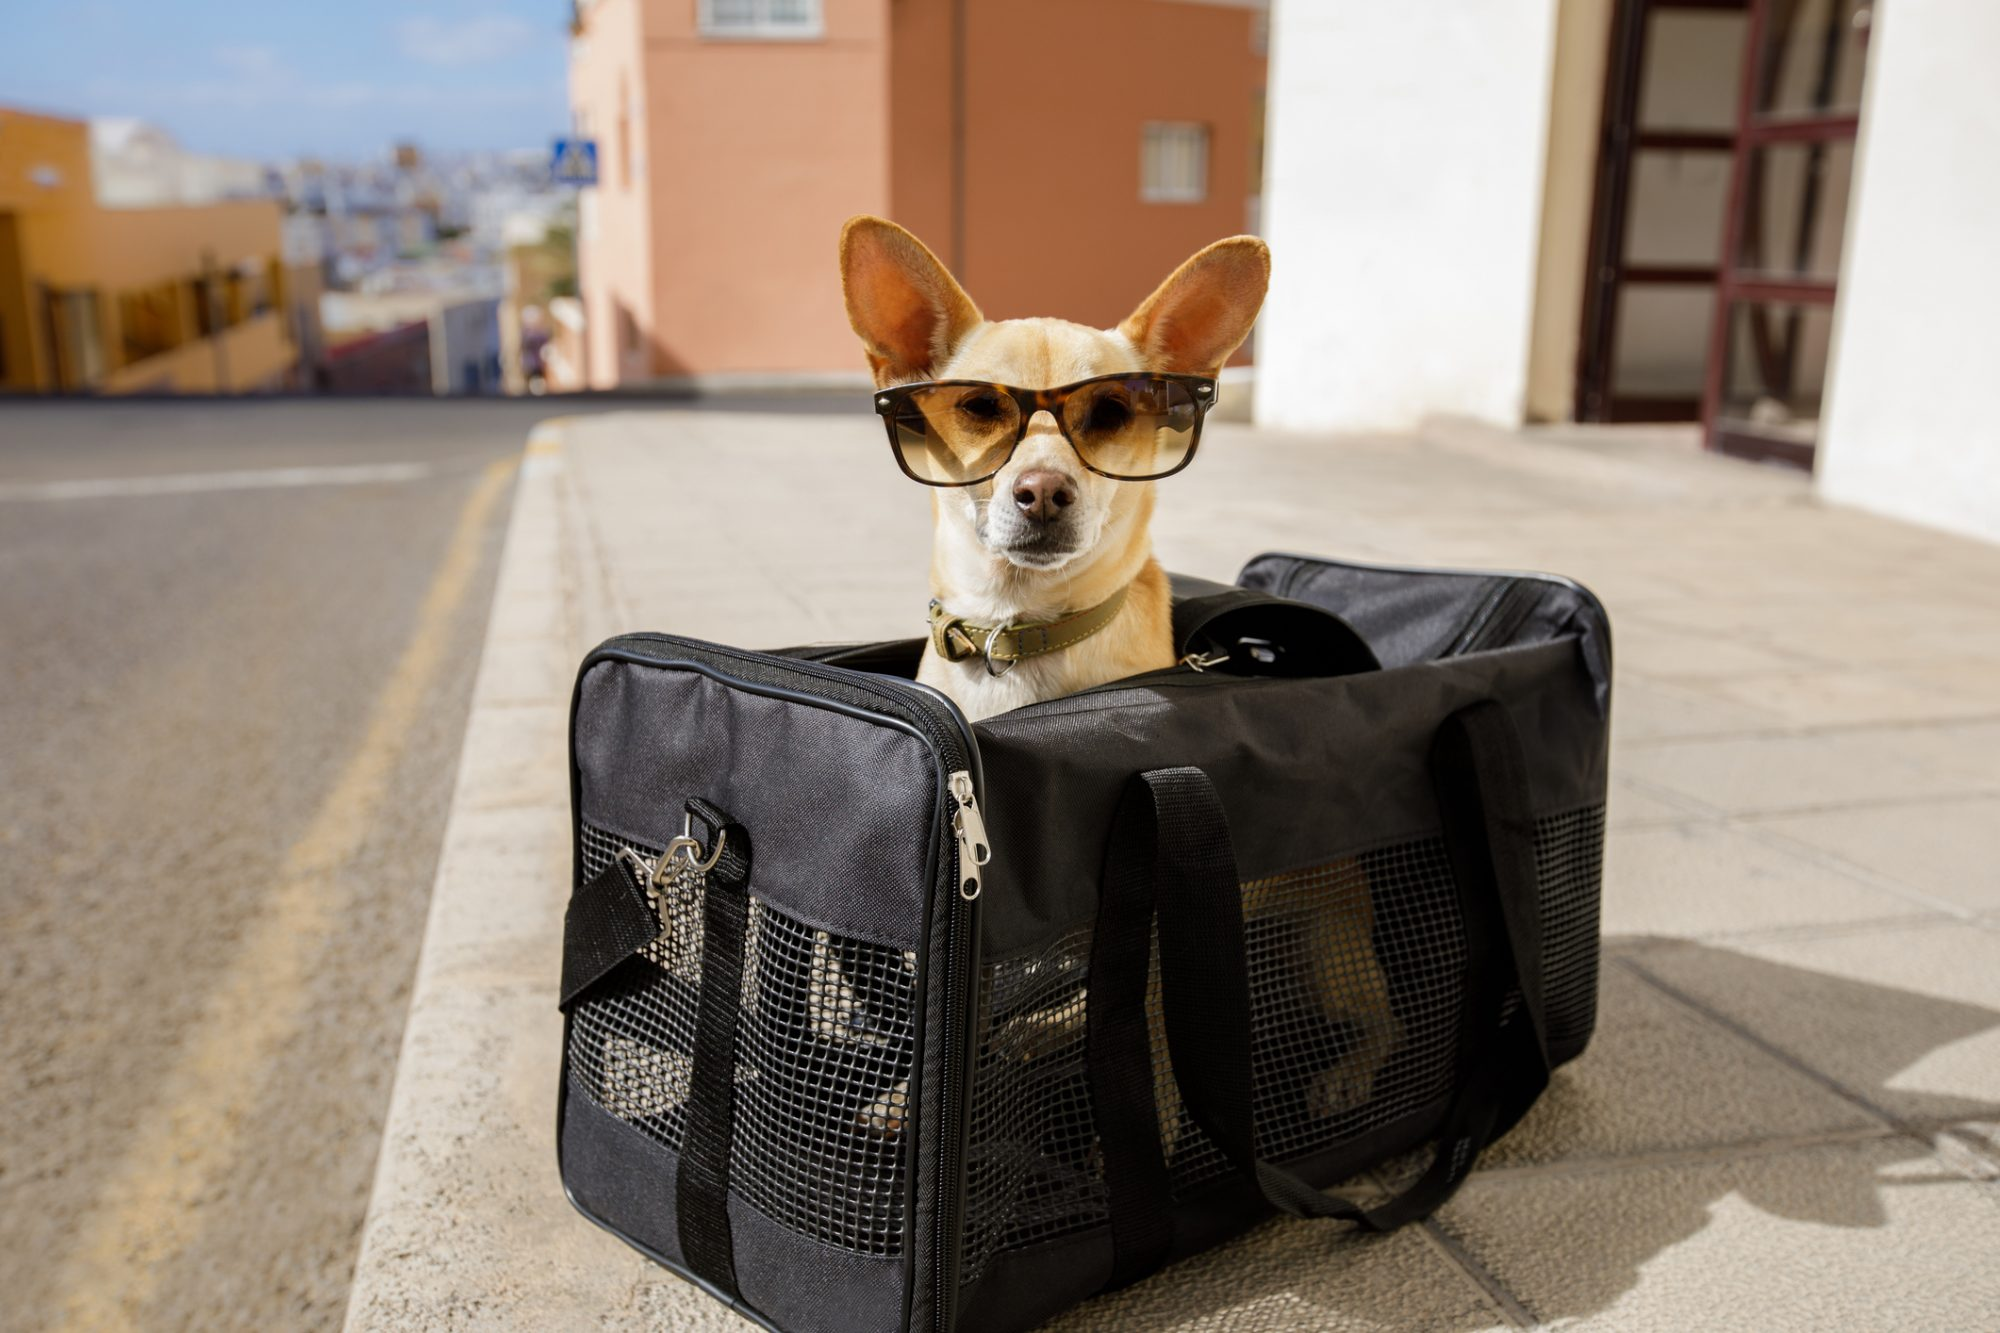 Keep your pet safe while traveling